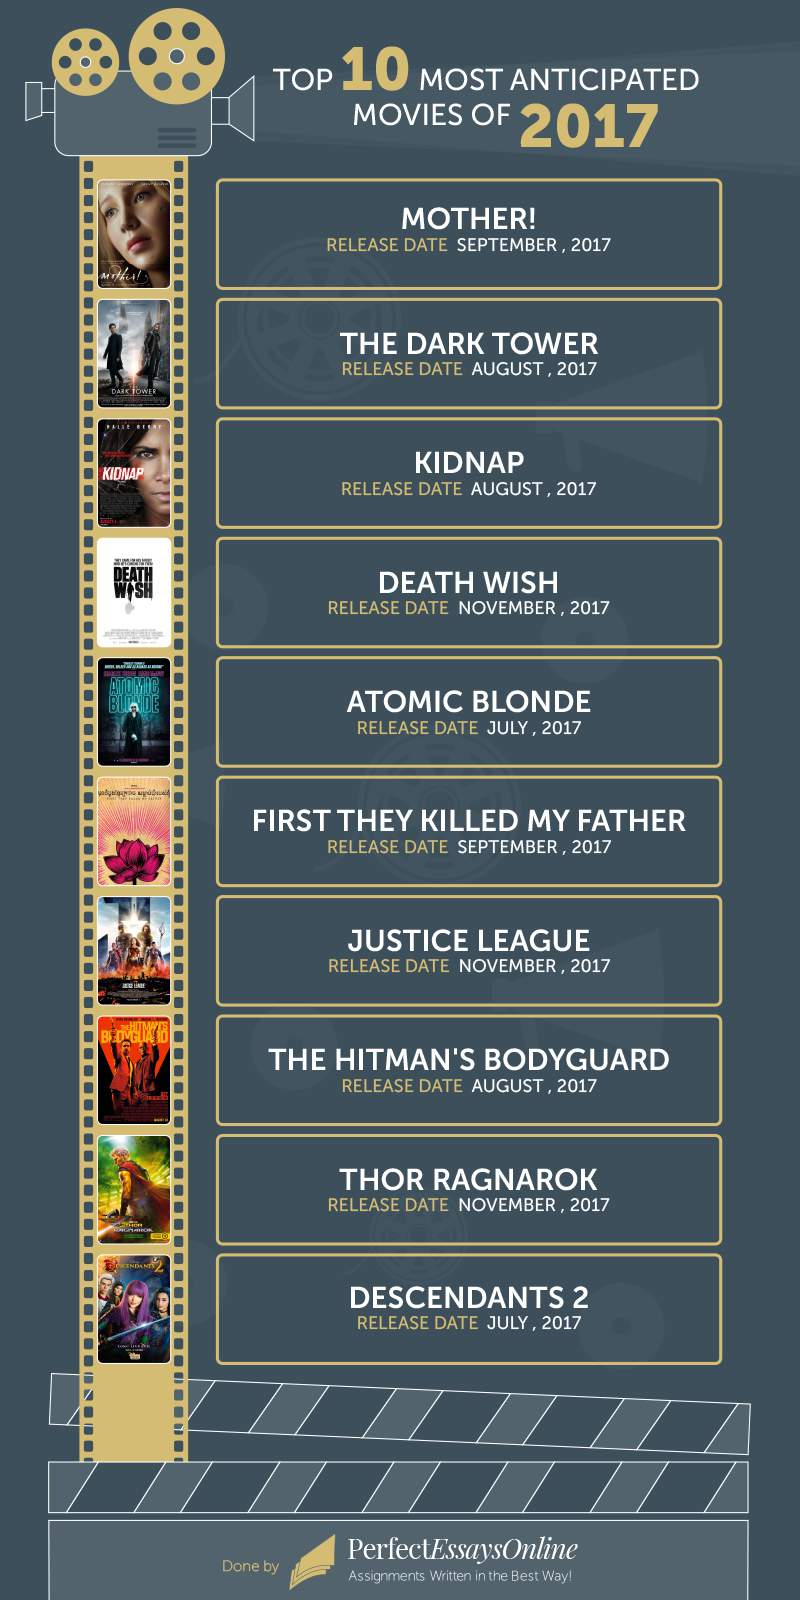 List-of-the-Most-Anticipated-Movies-of-2017